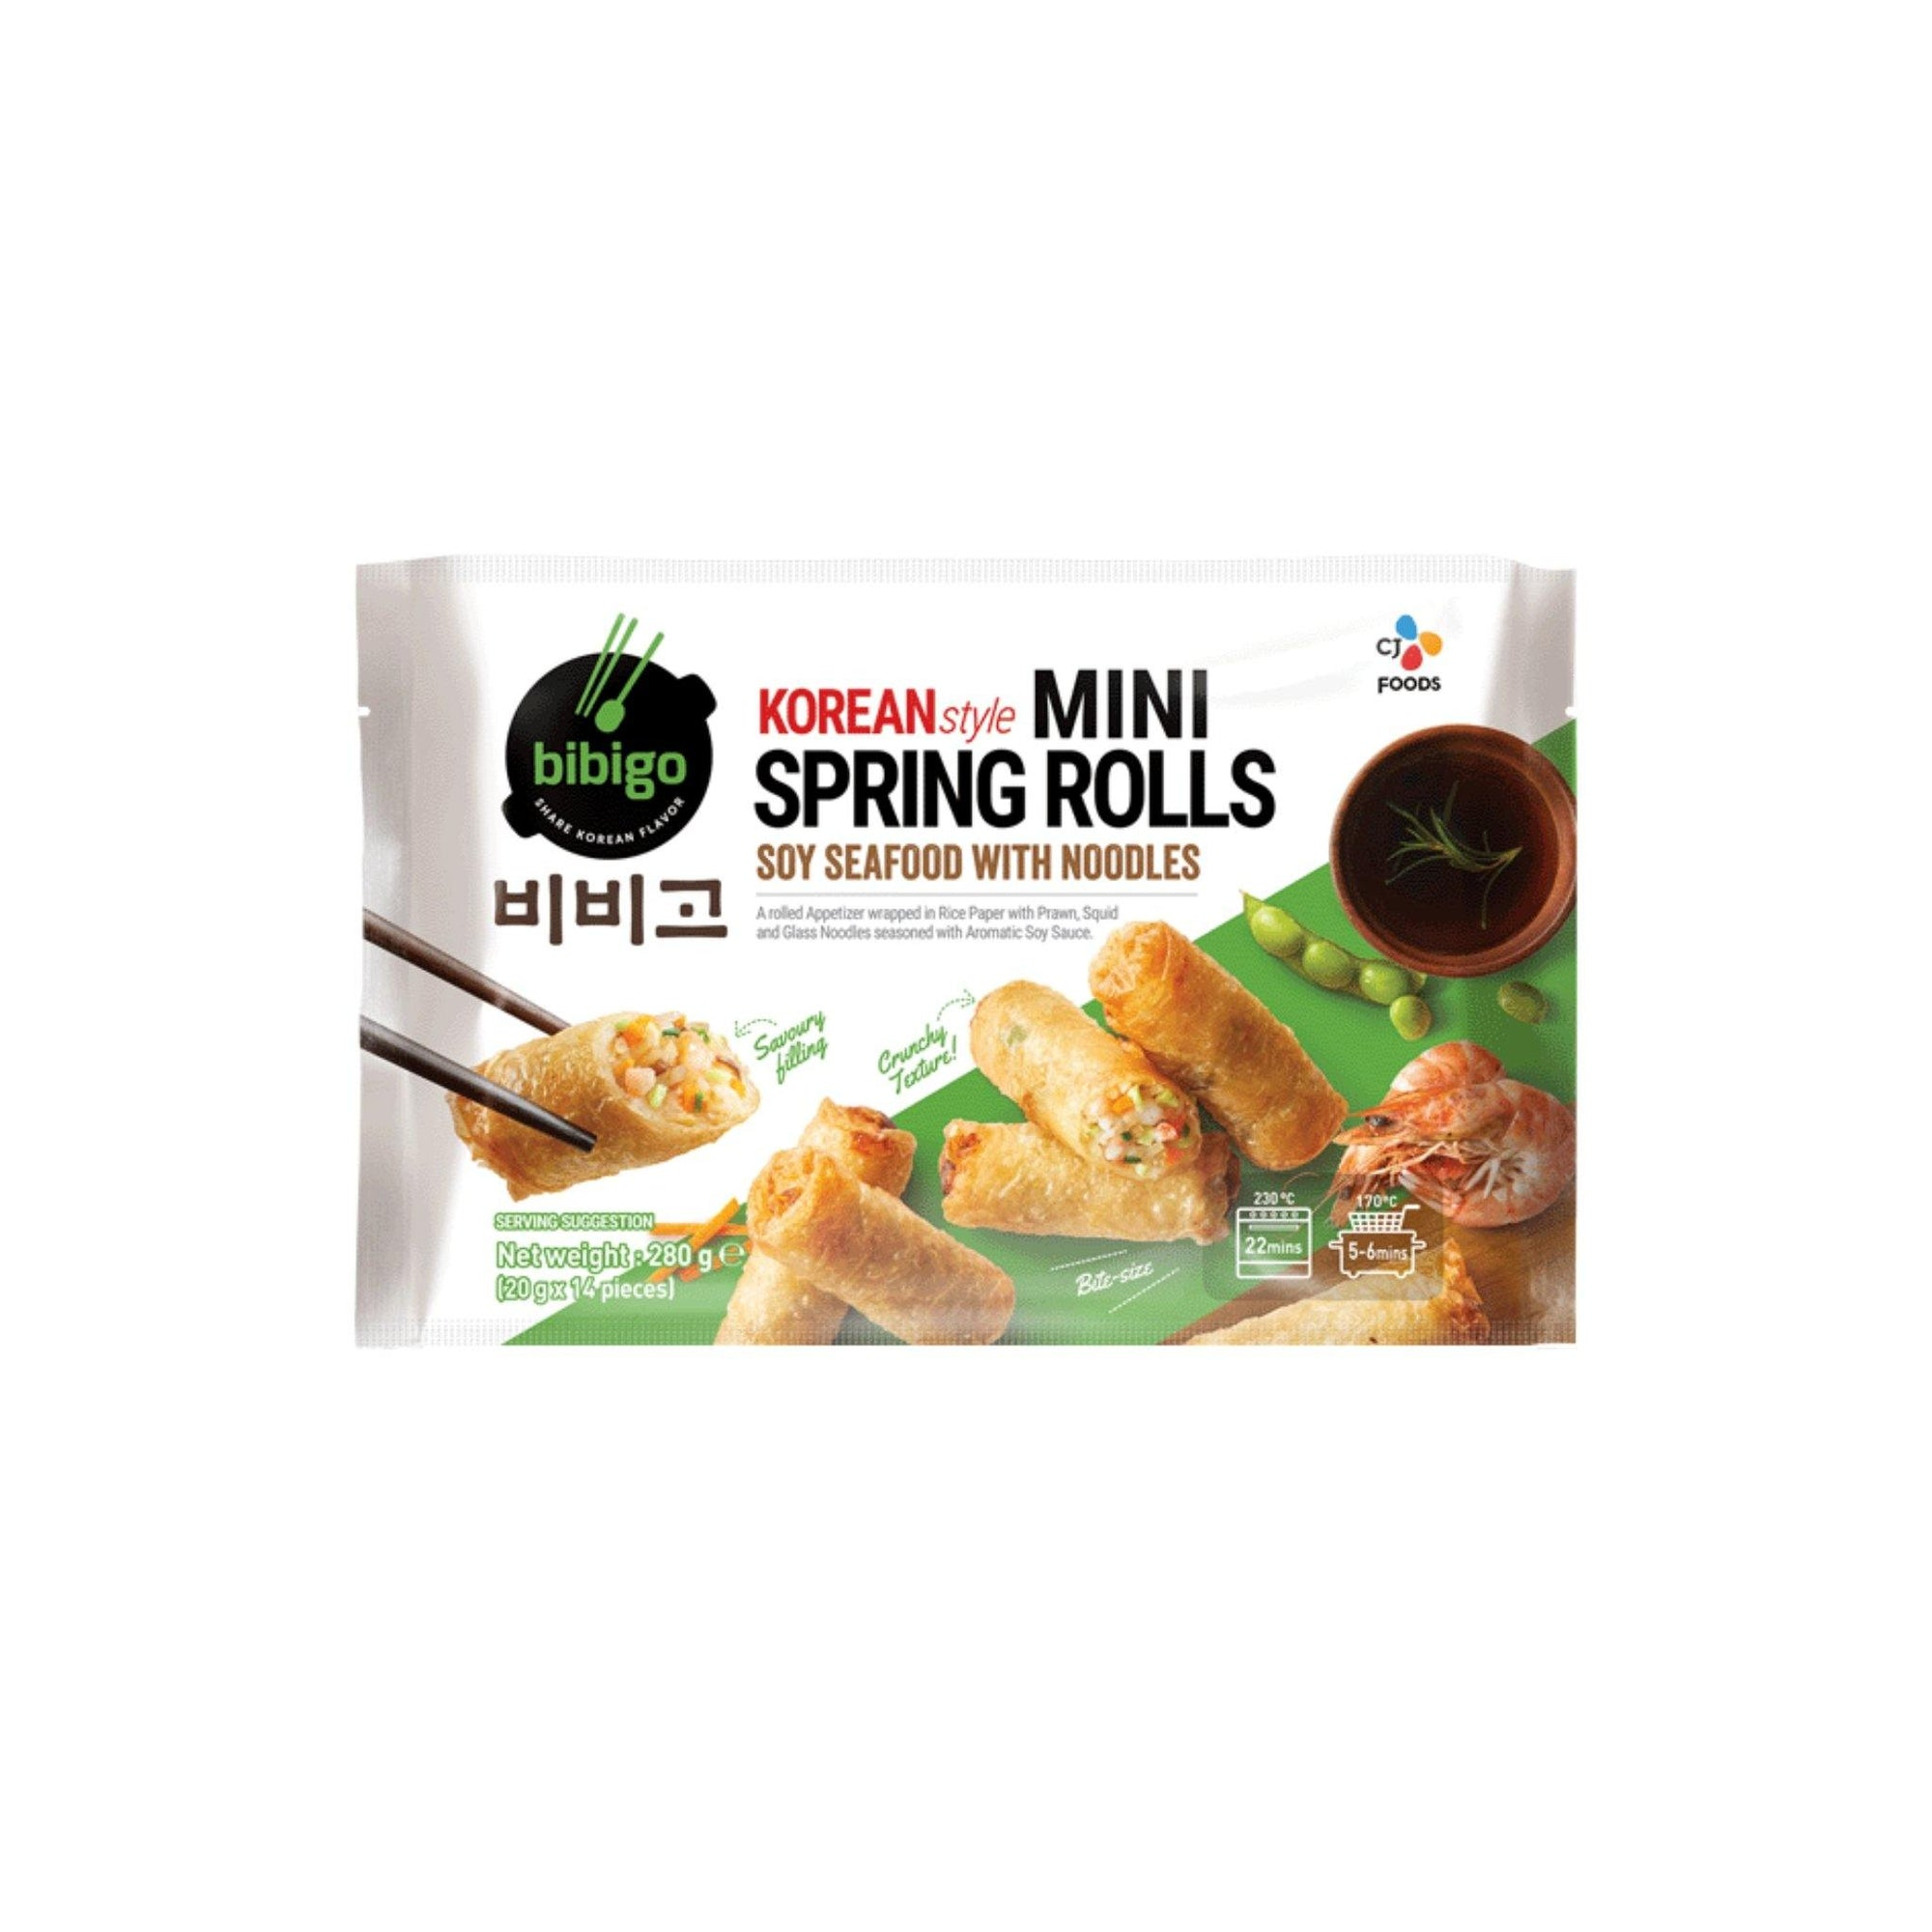 Bibigo Soy Seafoods with Noodles Spring Roll 280G - Asian Harvest